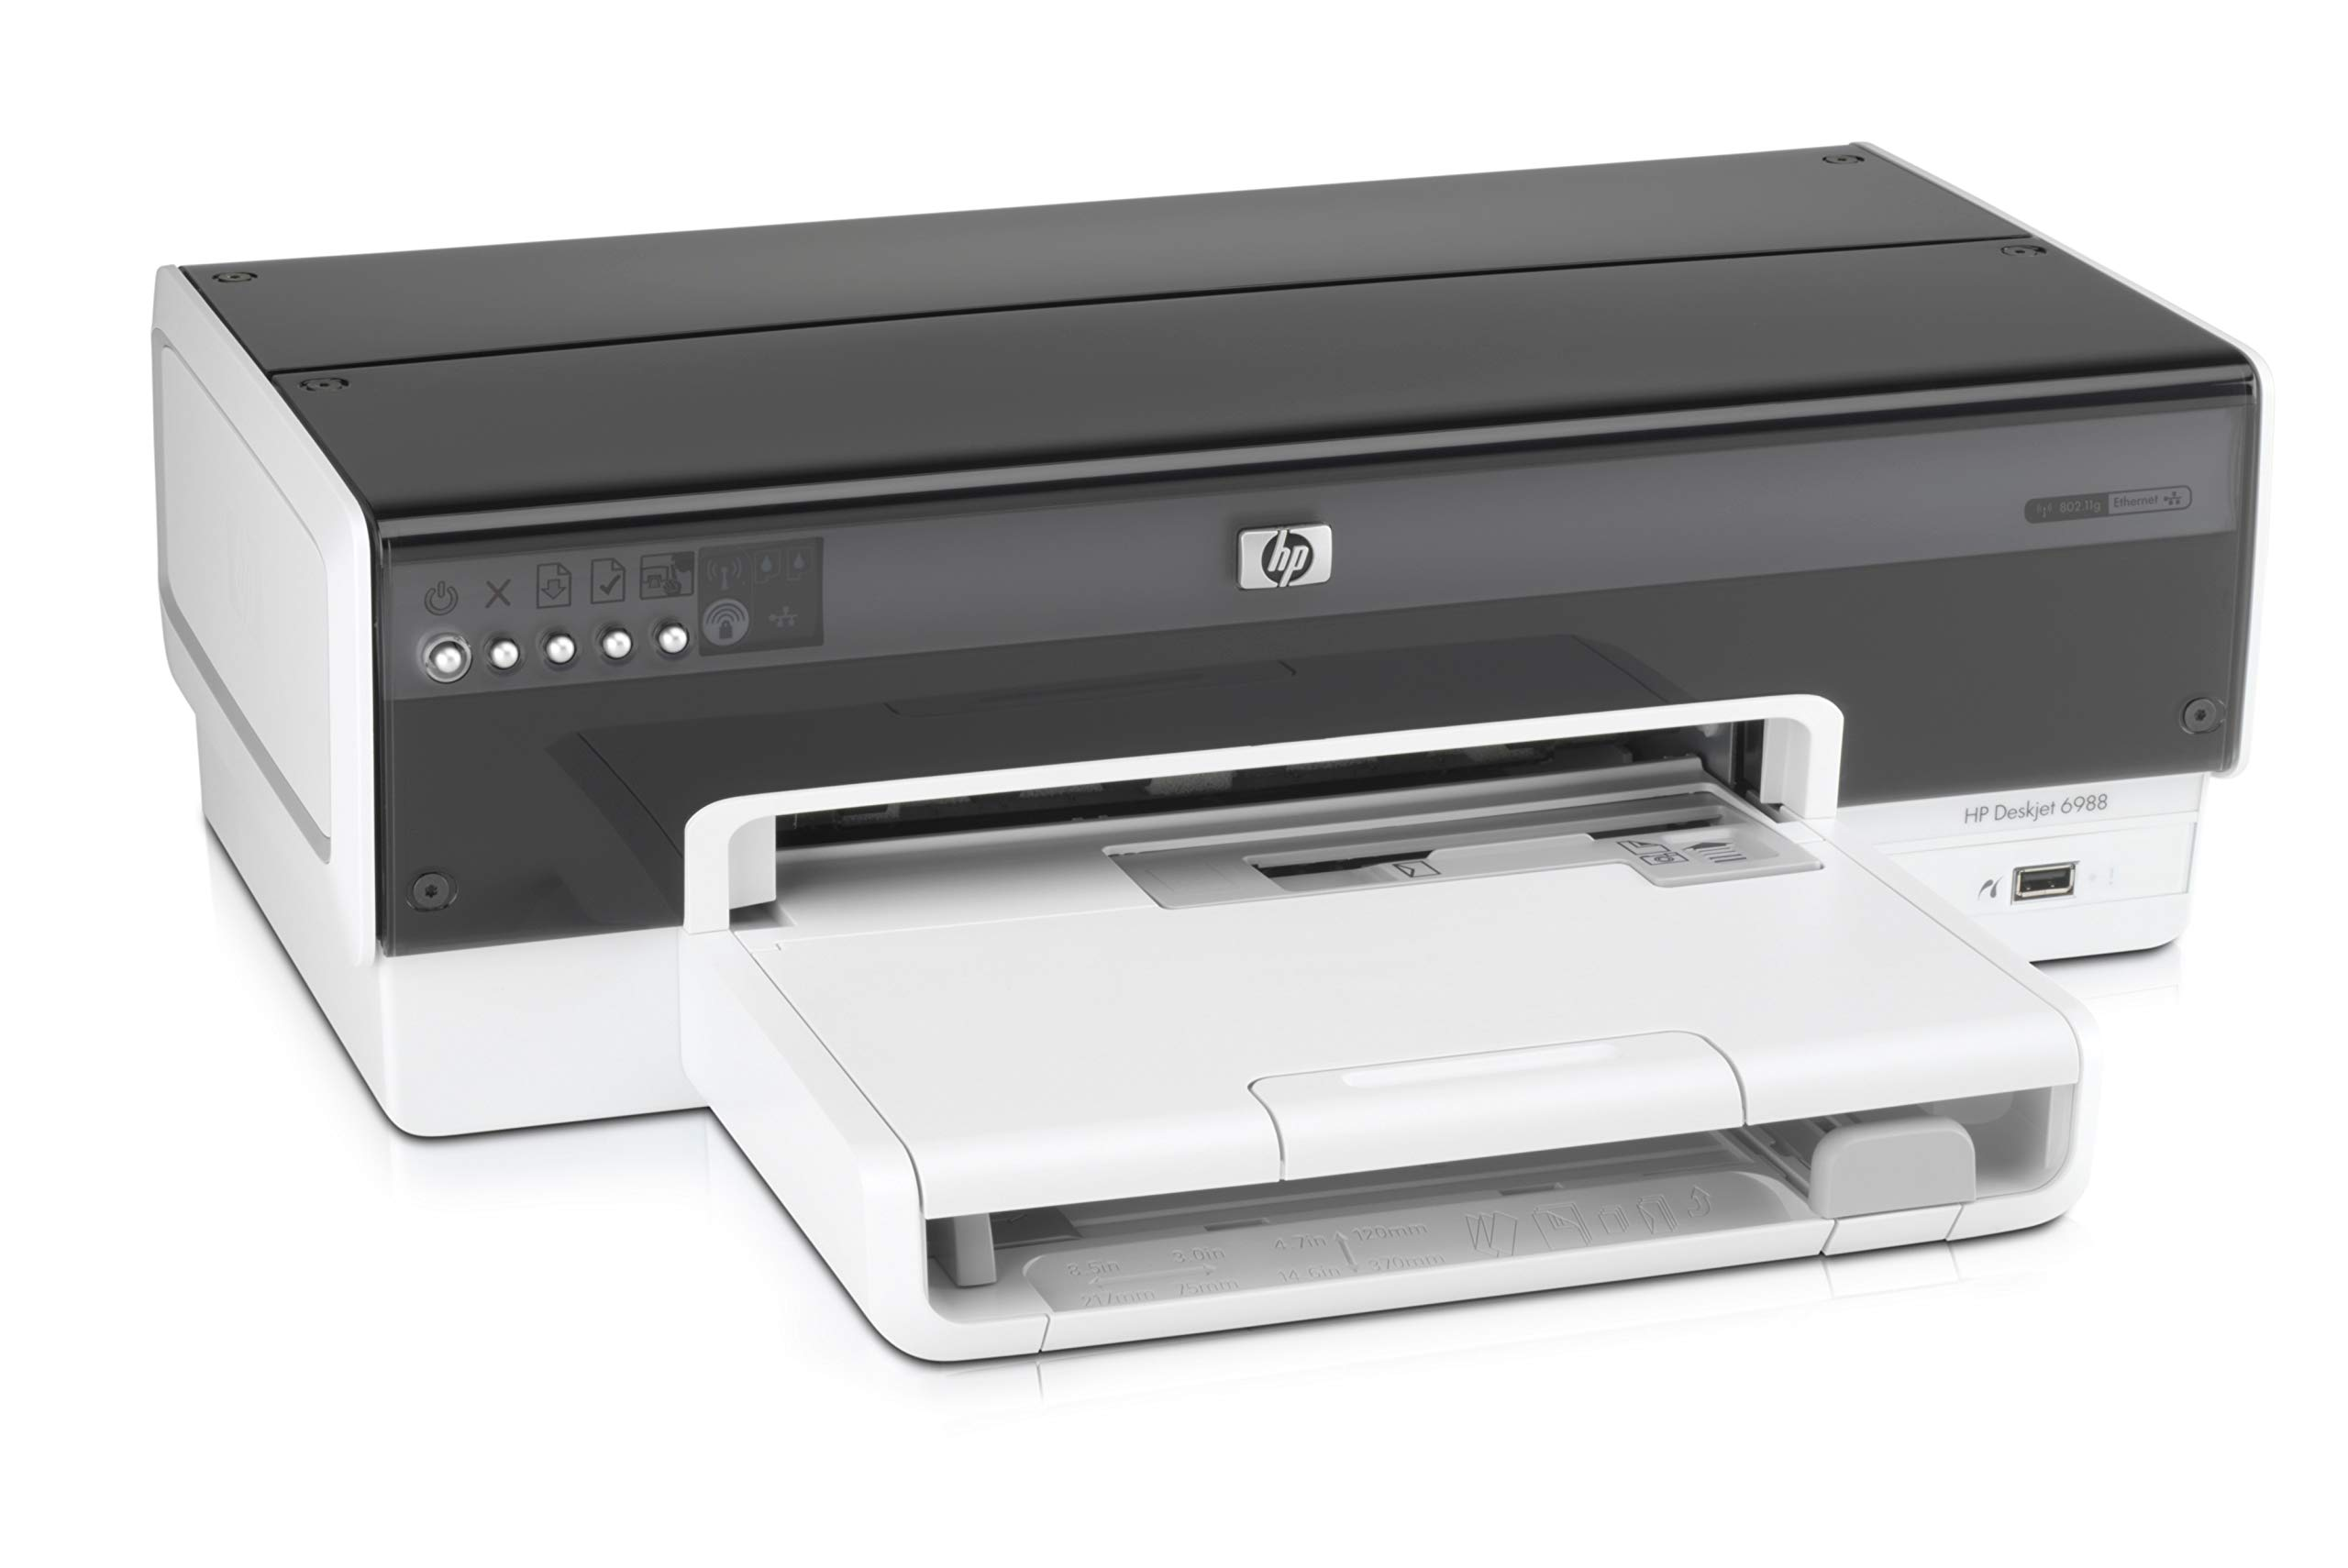 HP 6988 Deskjet Printer (CB055A#B1H) by HP (Image #1)